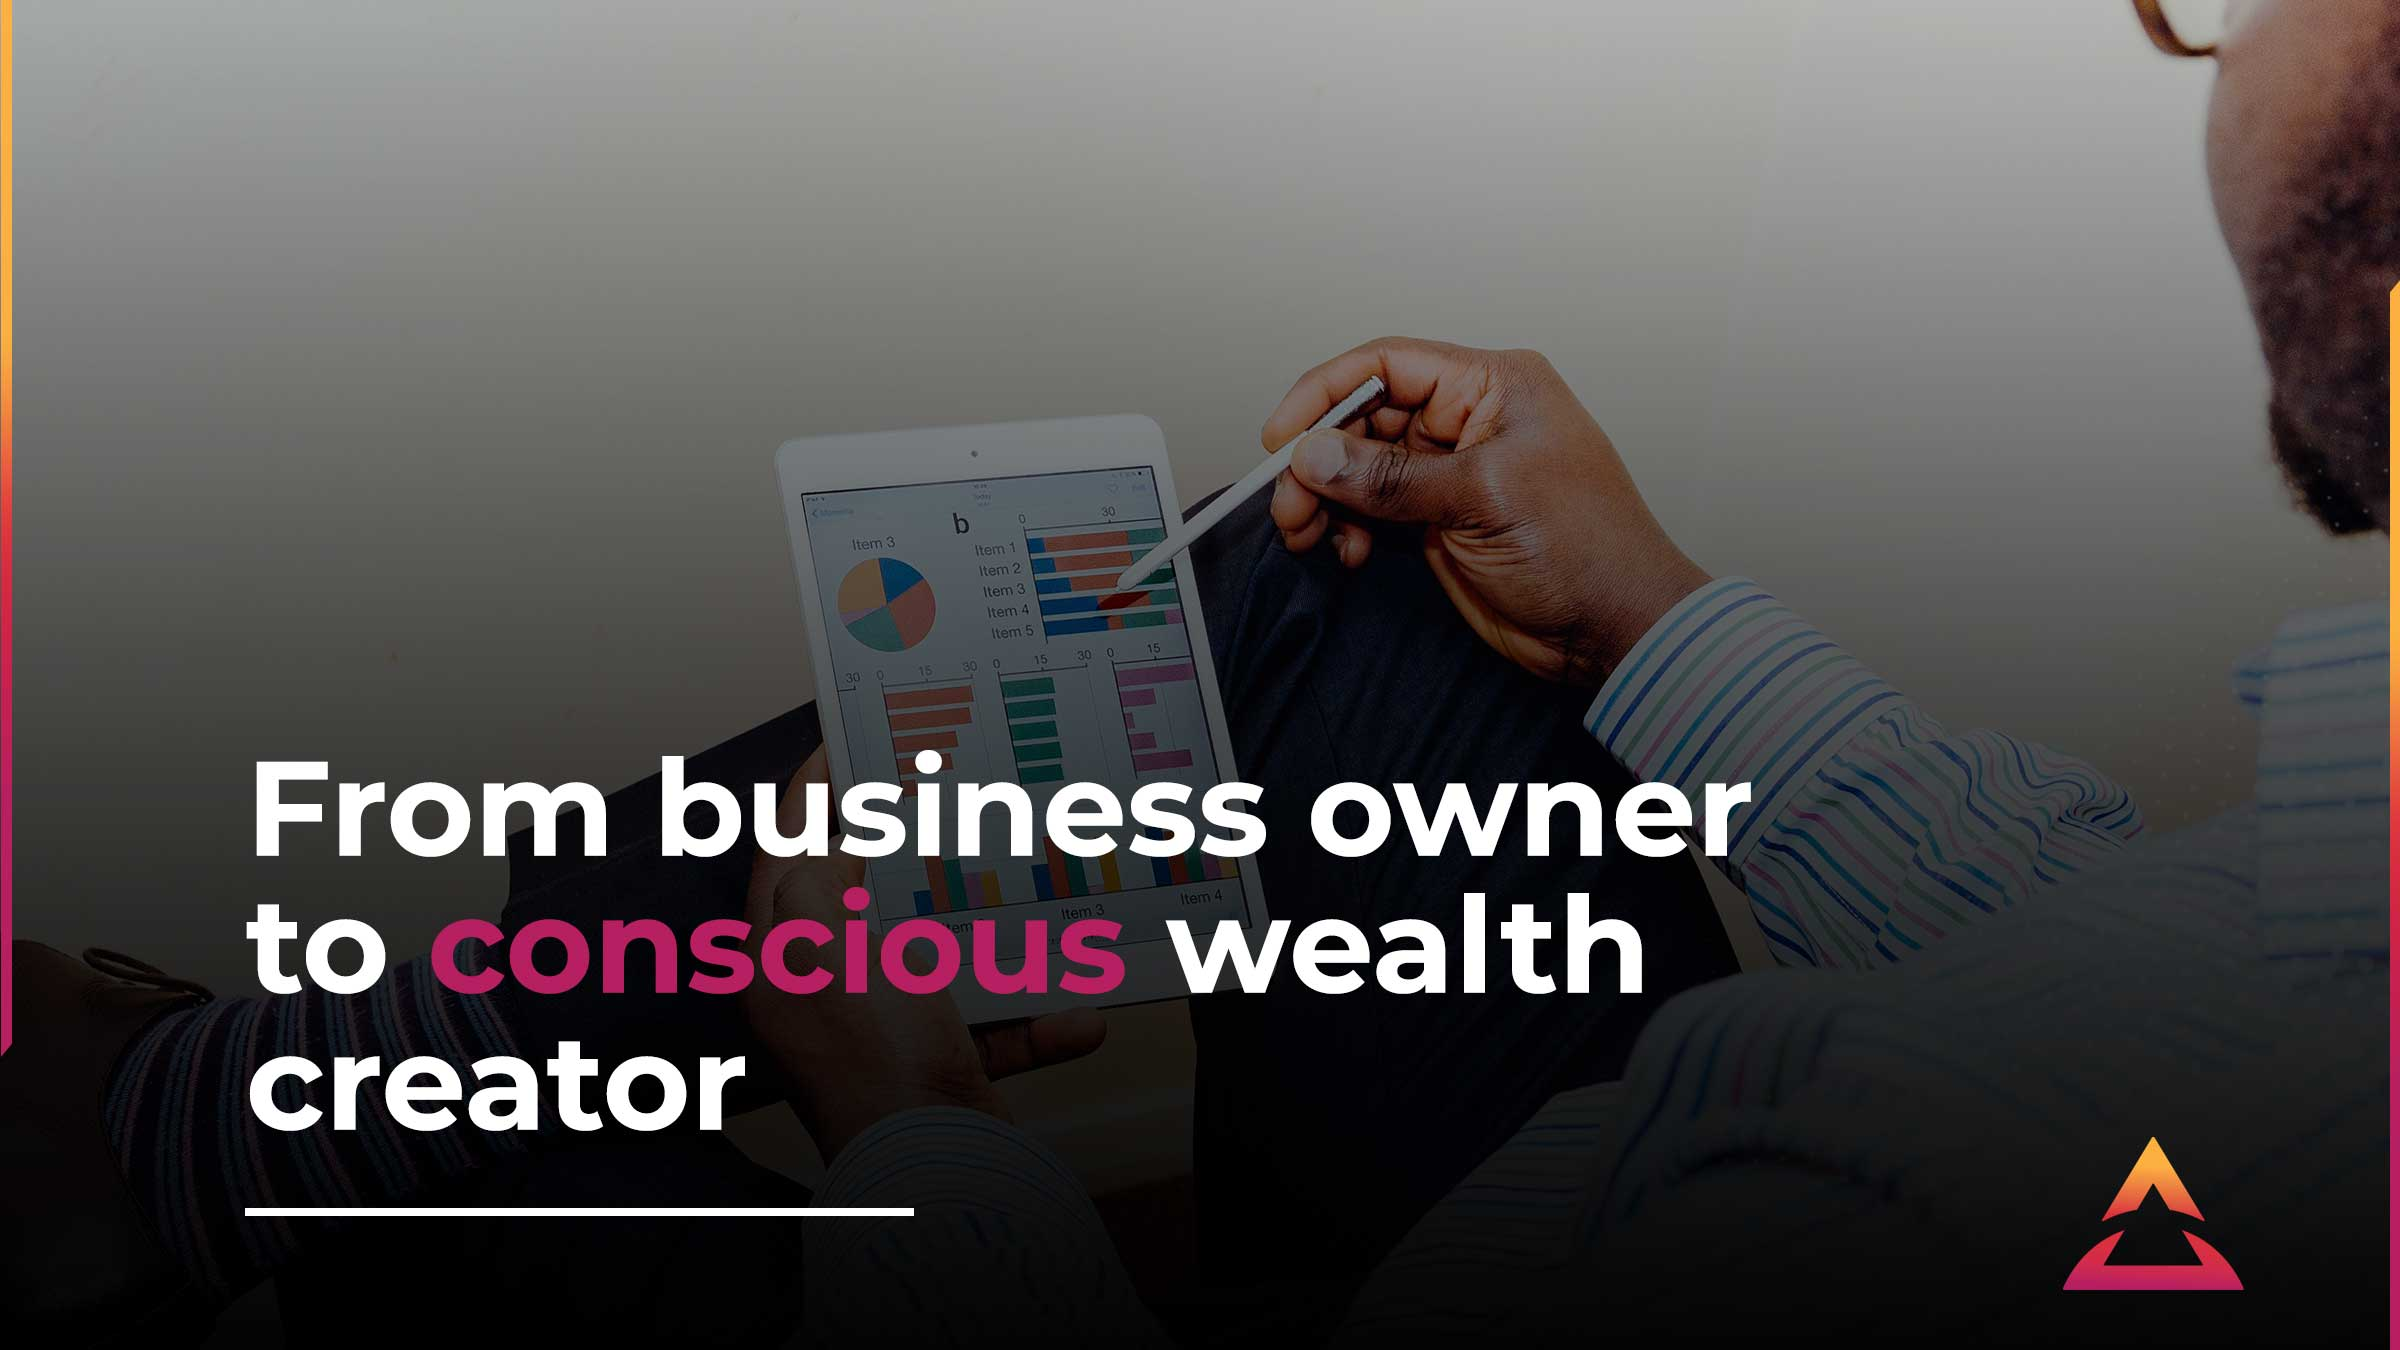 How to achieve financial freedom as a business owner